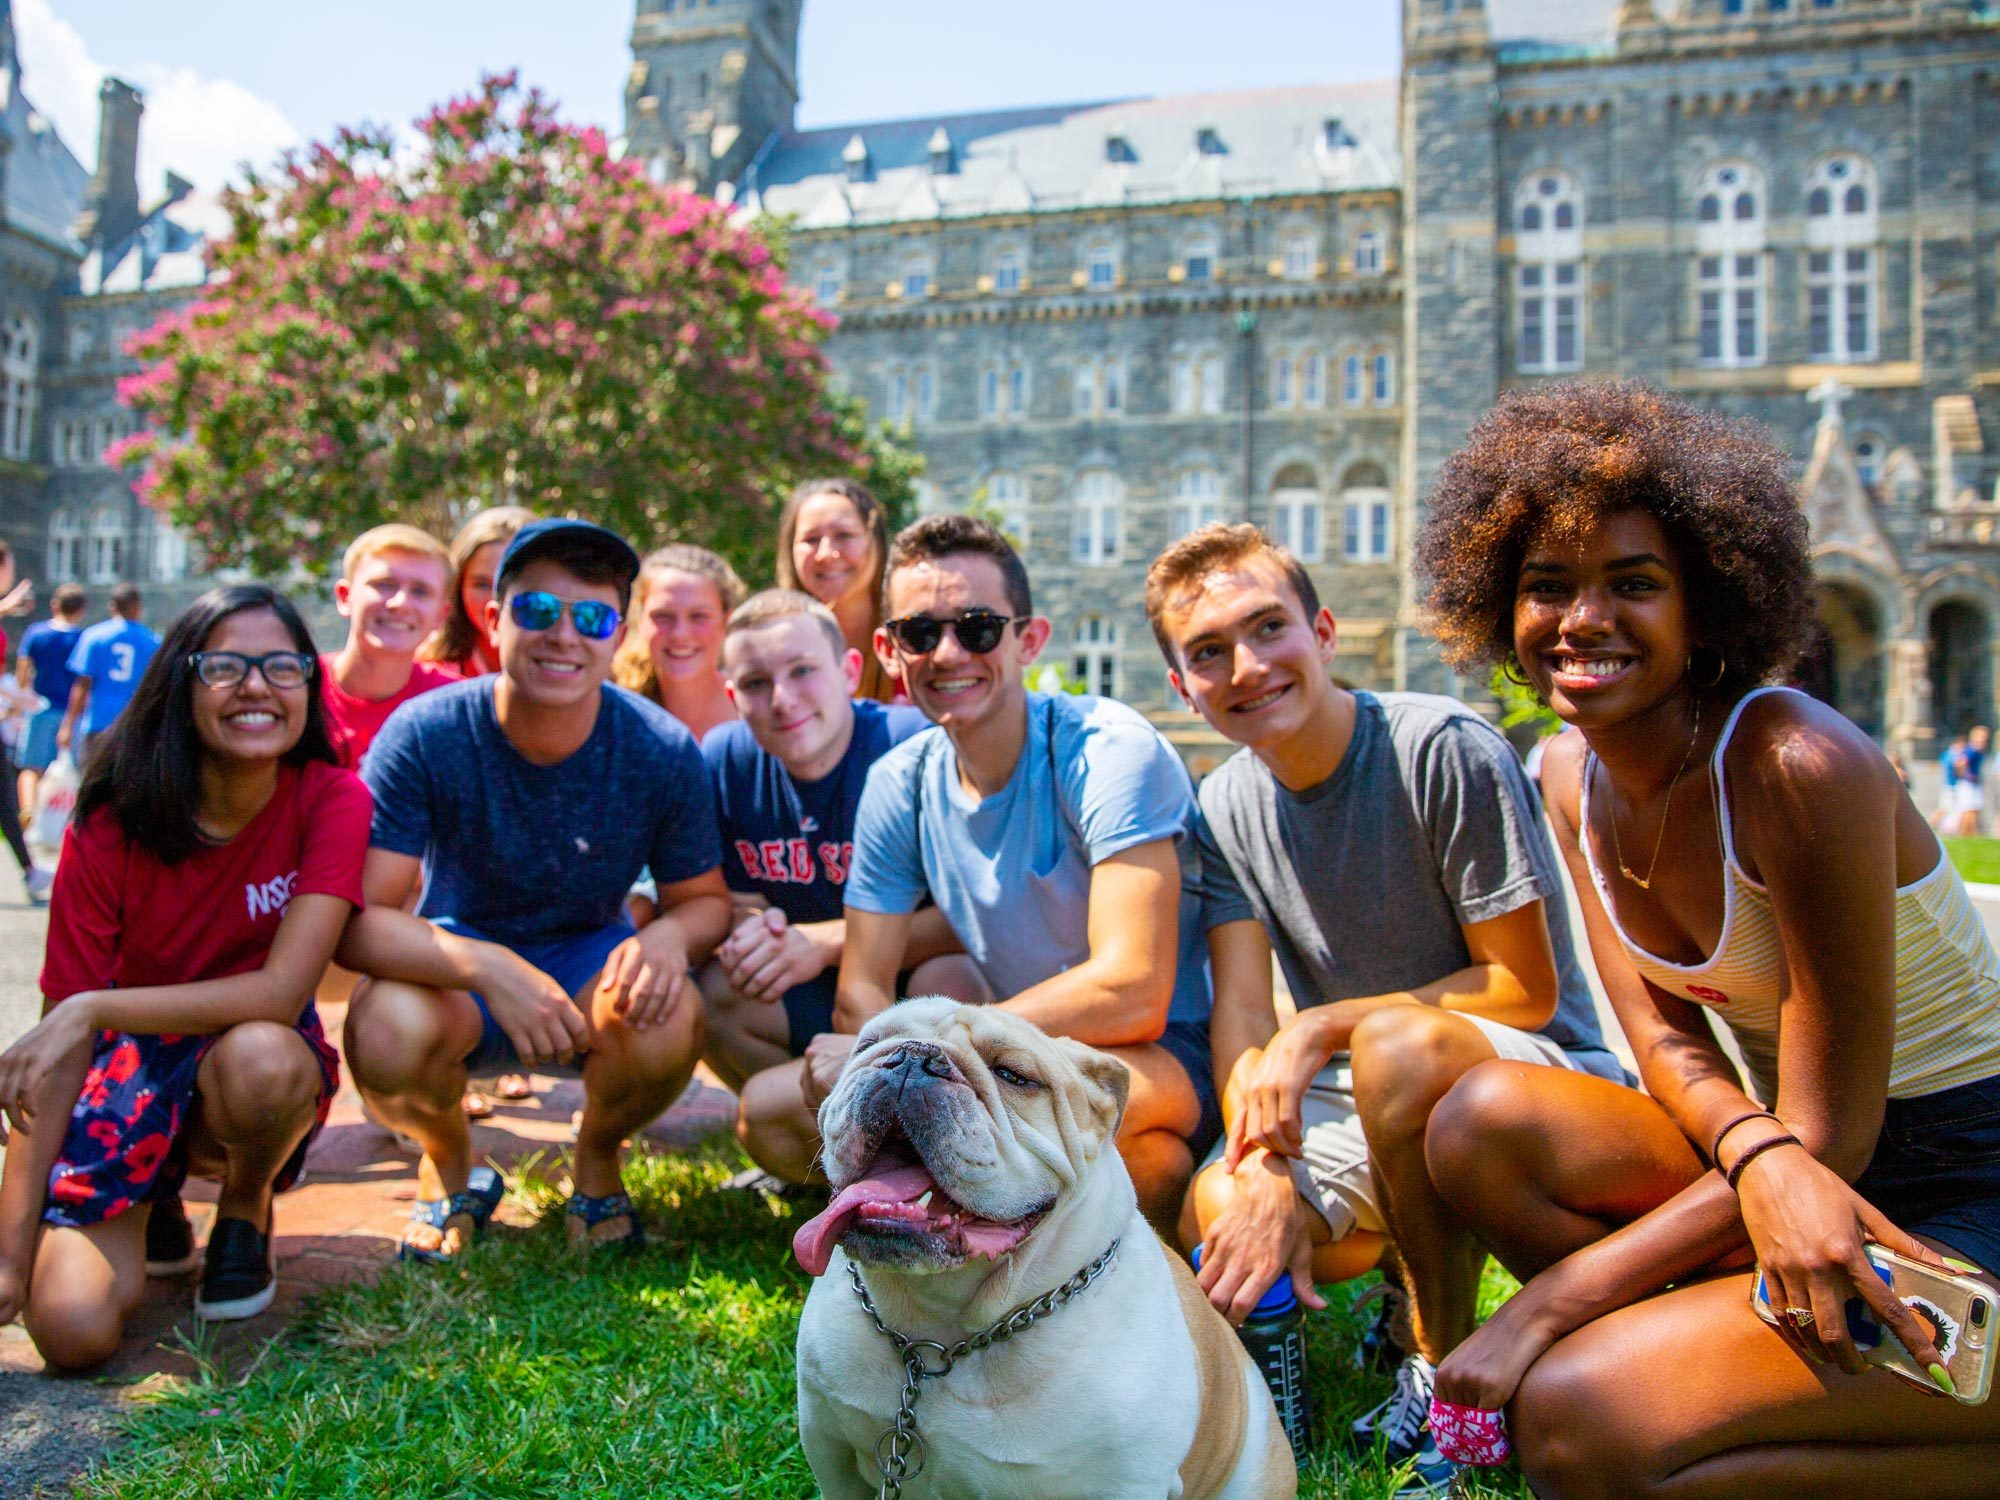 A group of students sit infront of Healy Hall, posing for a photo with Jack the bulldog.